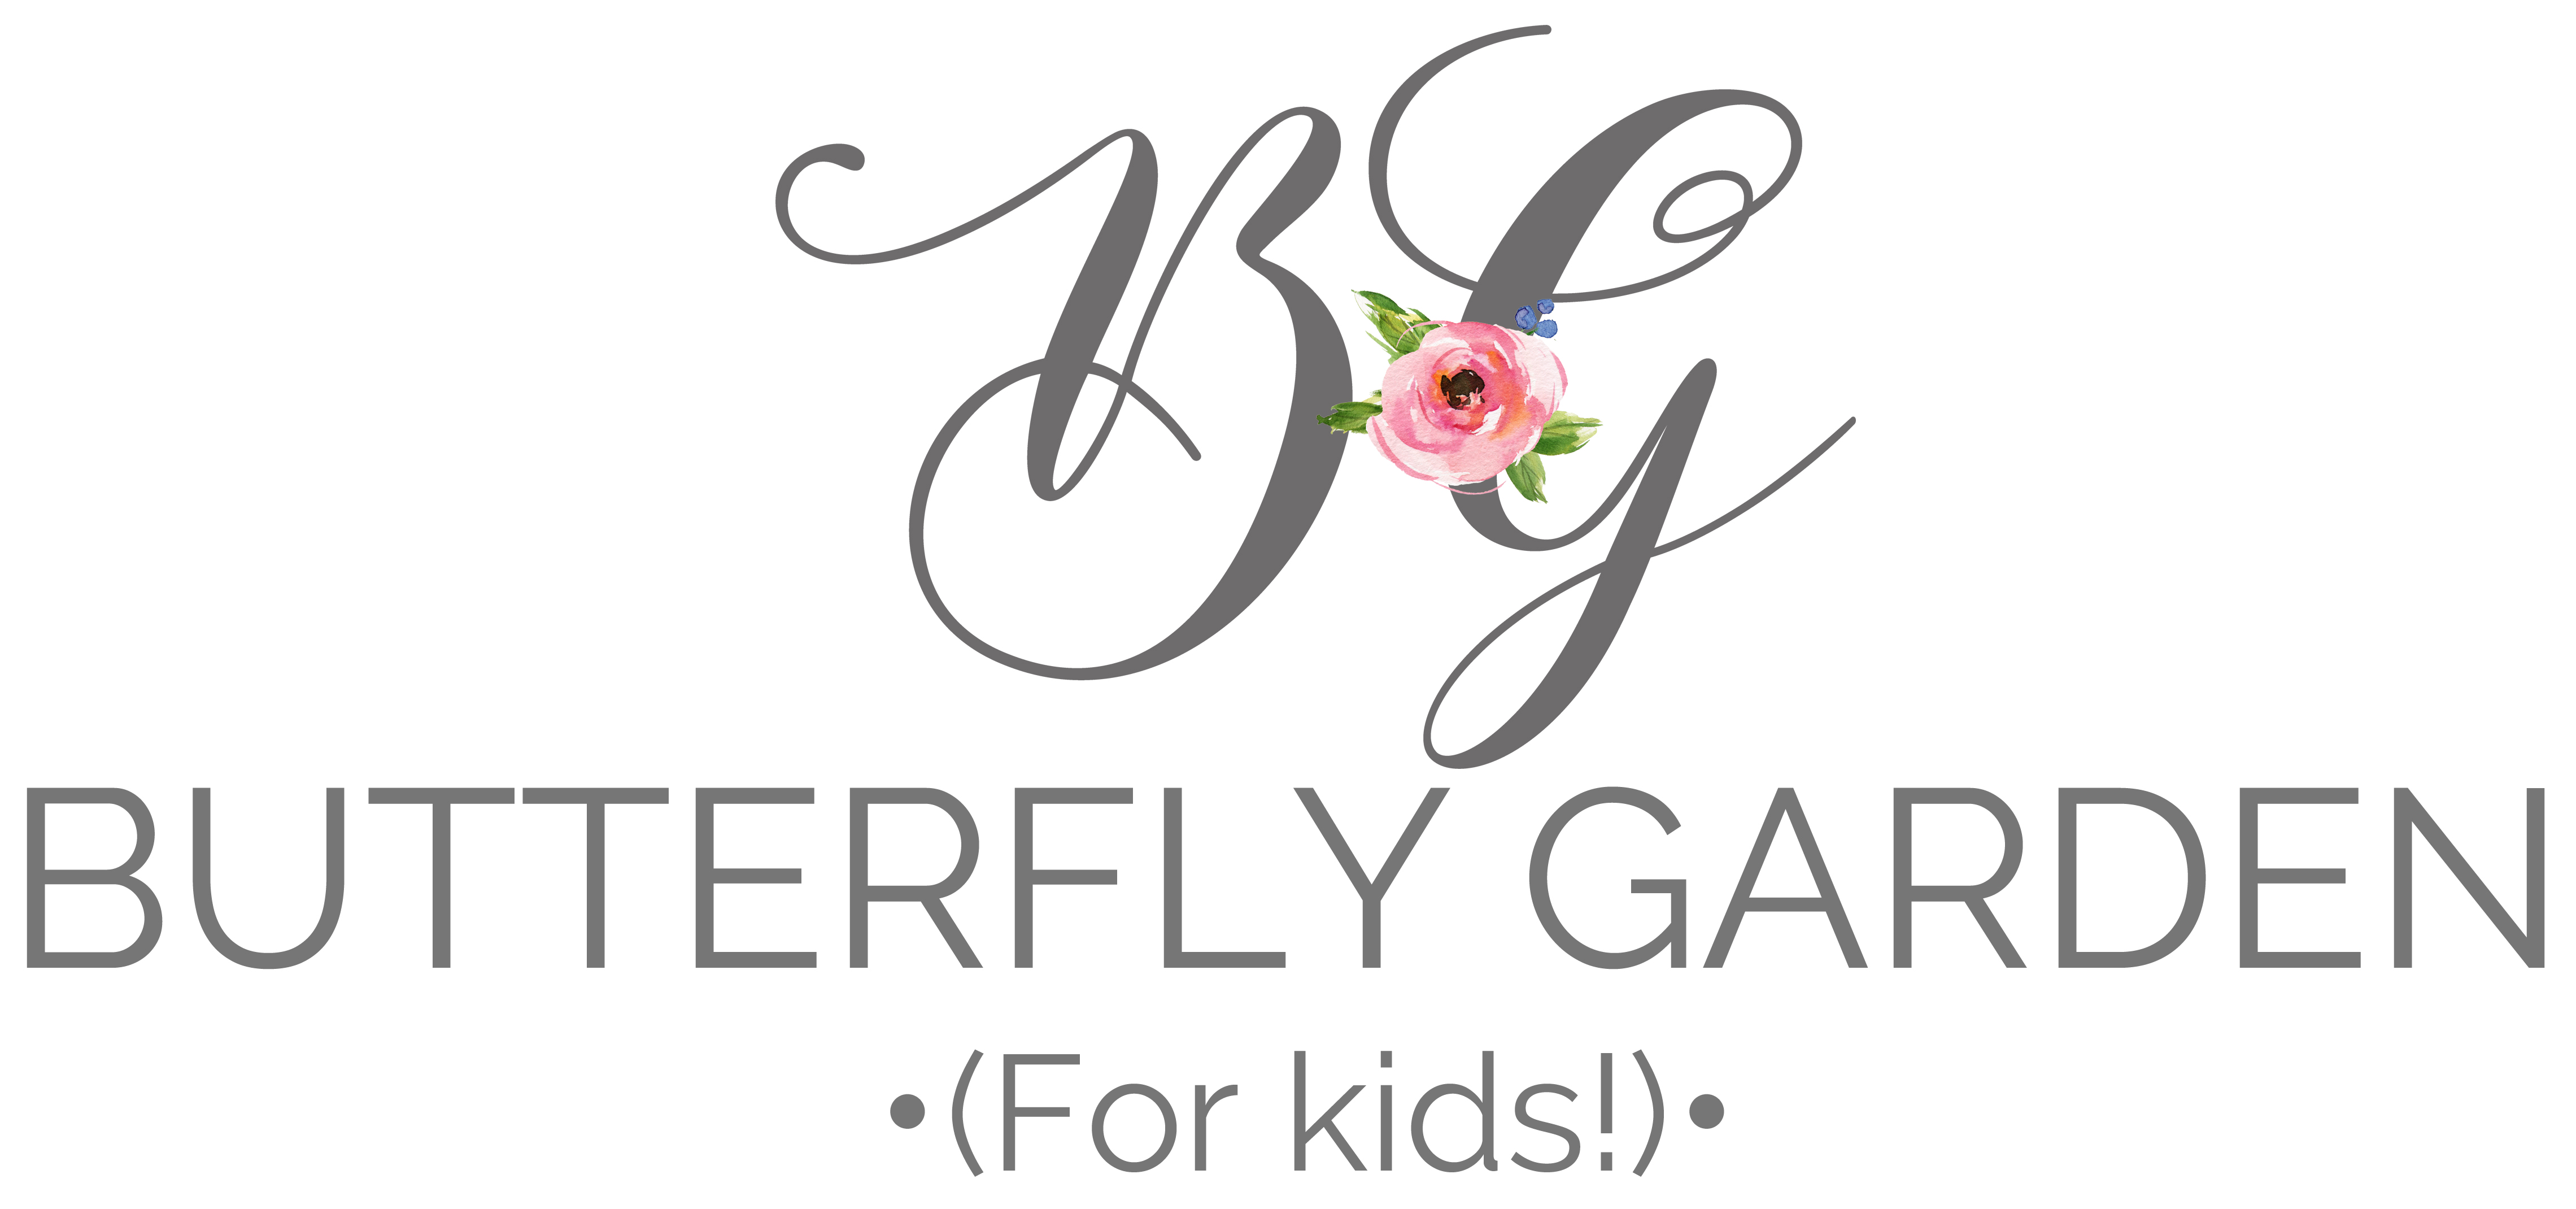 Butterfly Garden (for kids!)